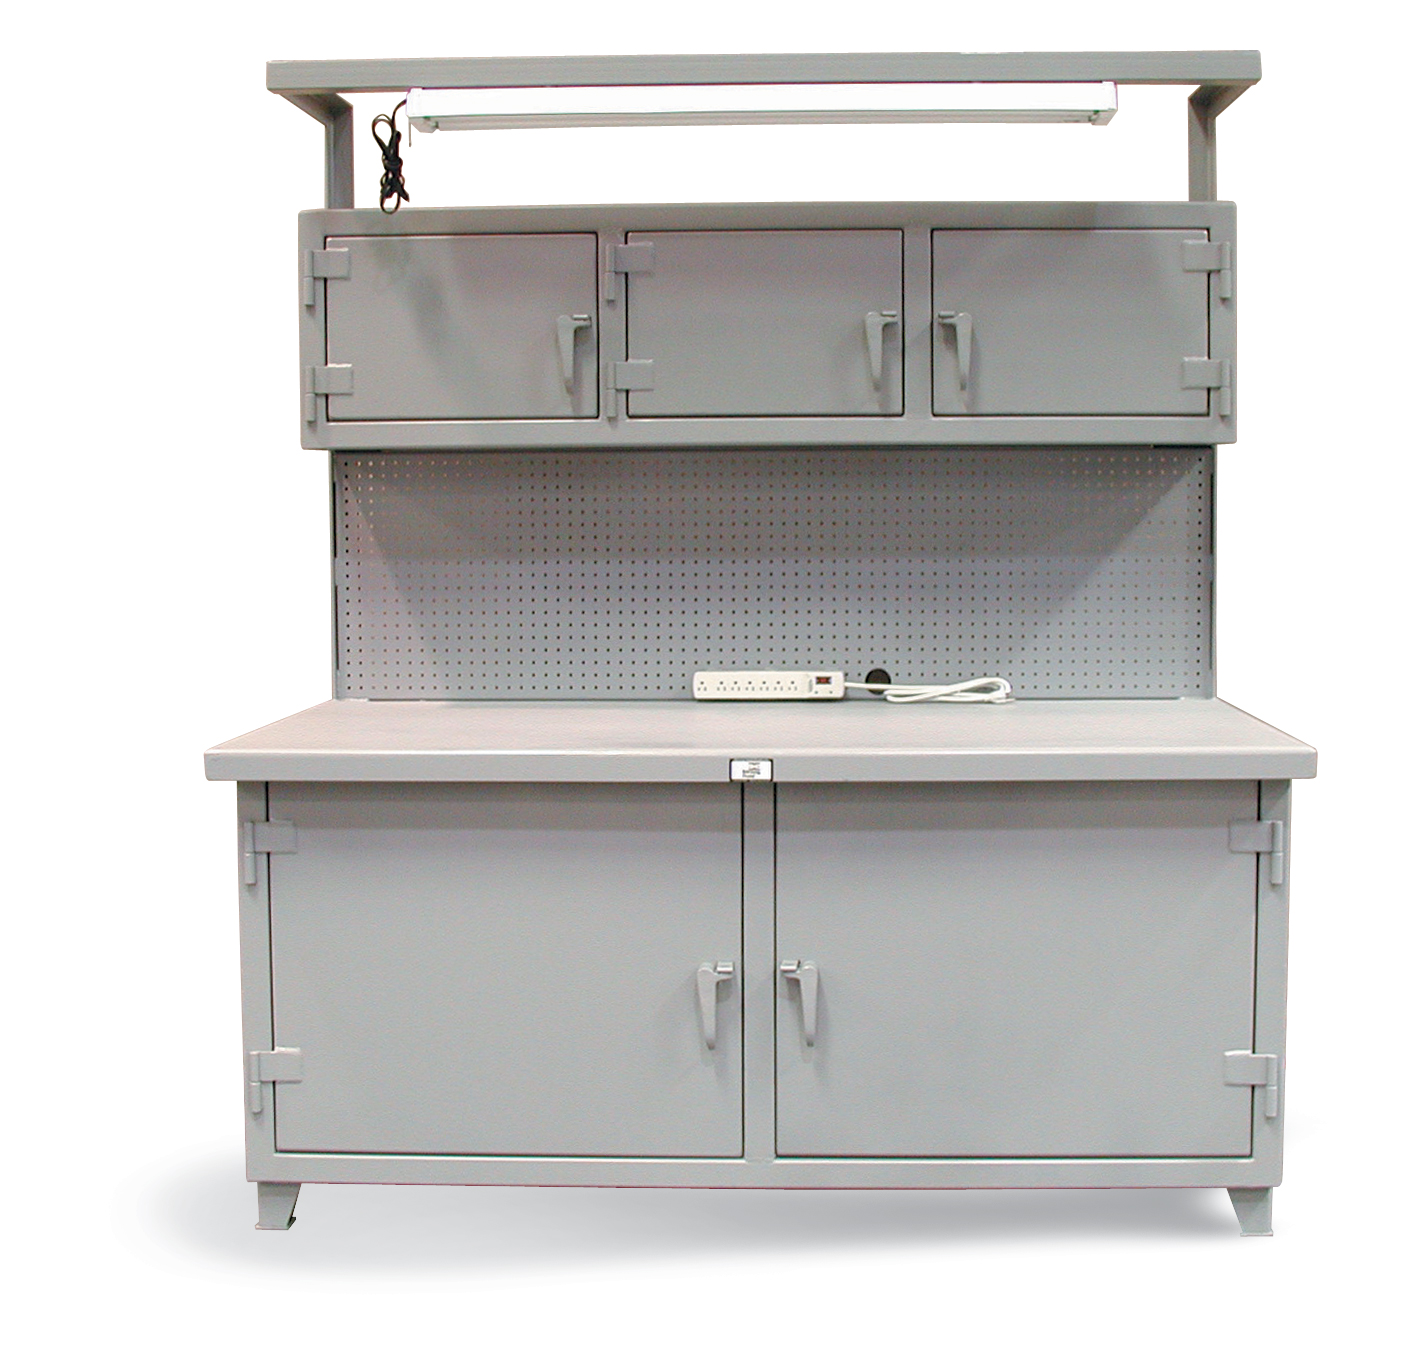 Workbench With Pegboard Lockable Compartments And Light